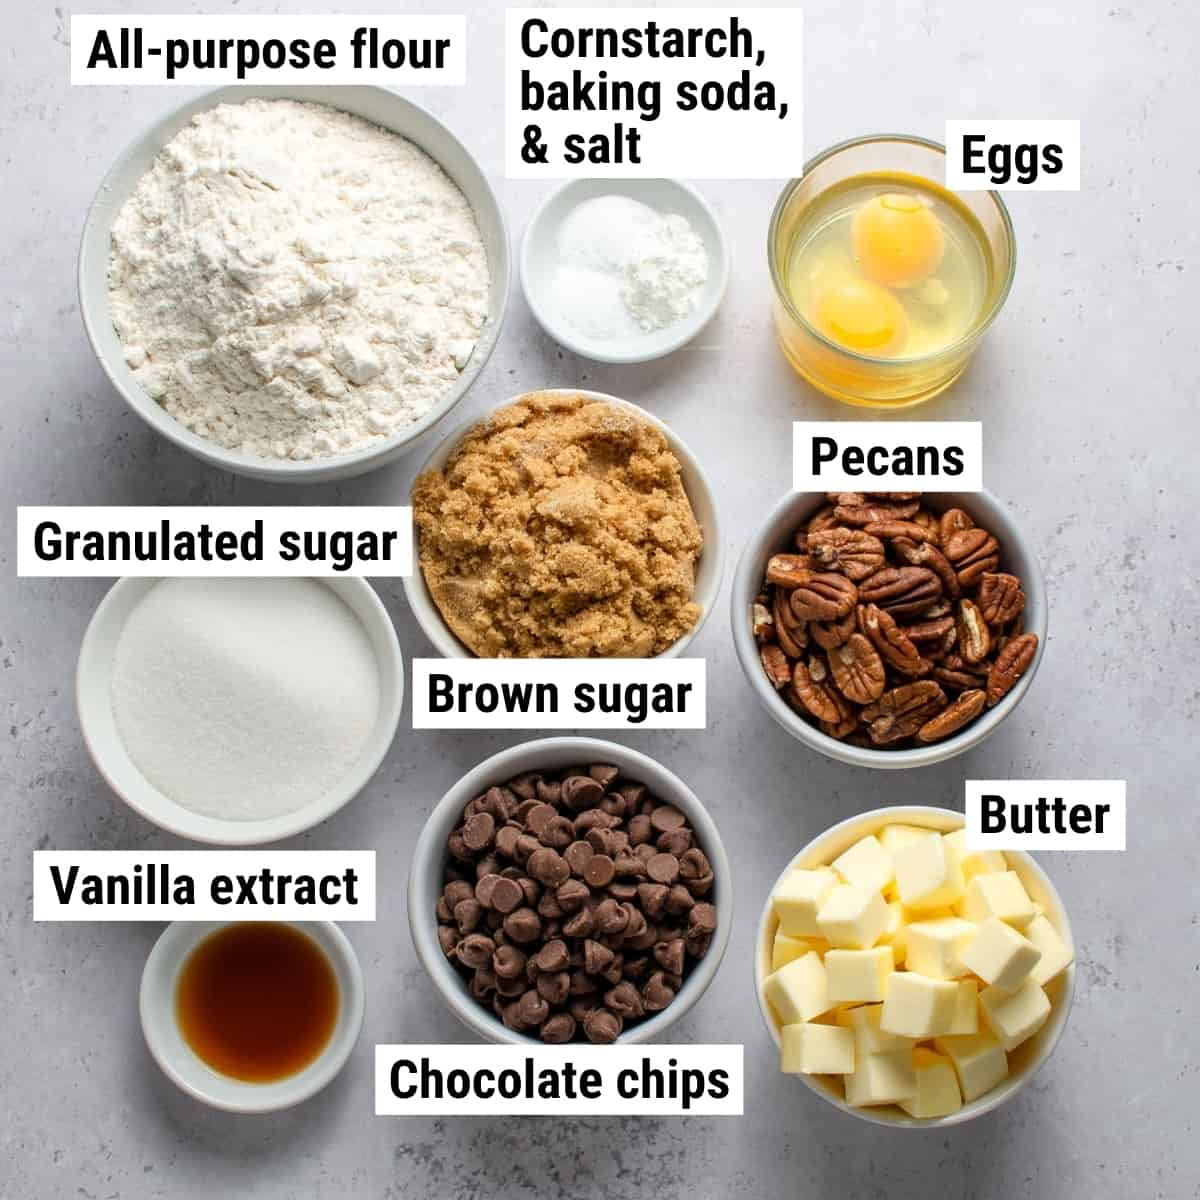 The ingredients used to make chocolate chip pecan cookies spread out on a table.